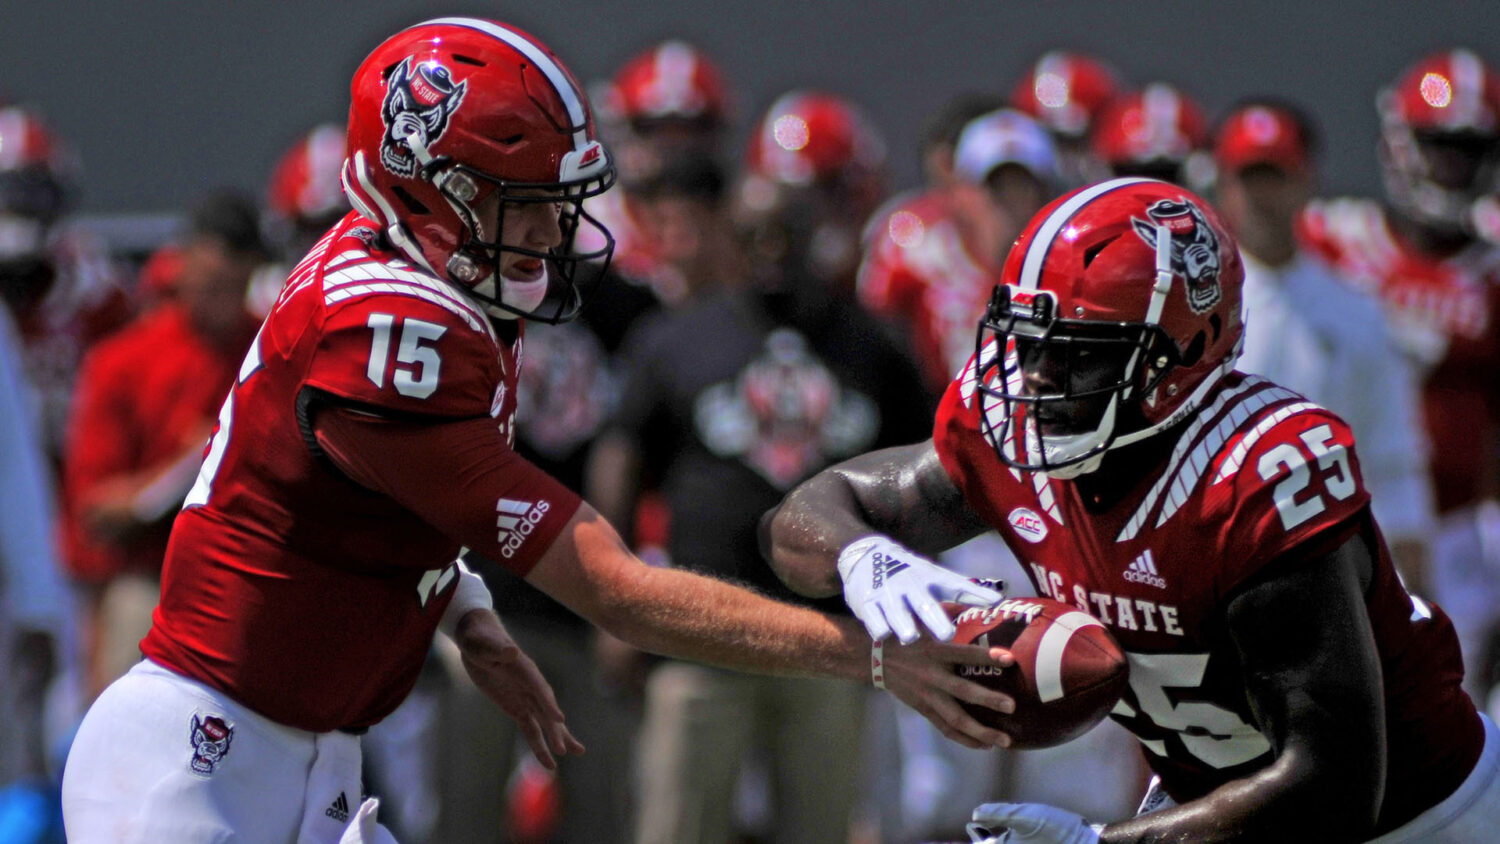 NC State football players on the field during a game.